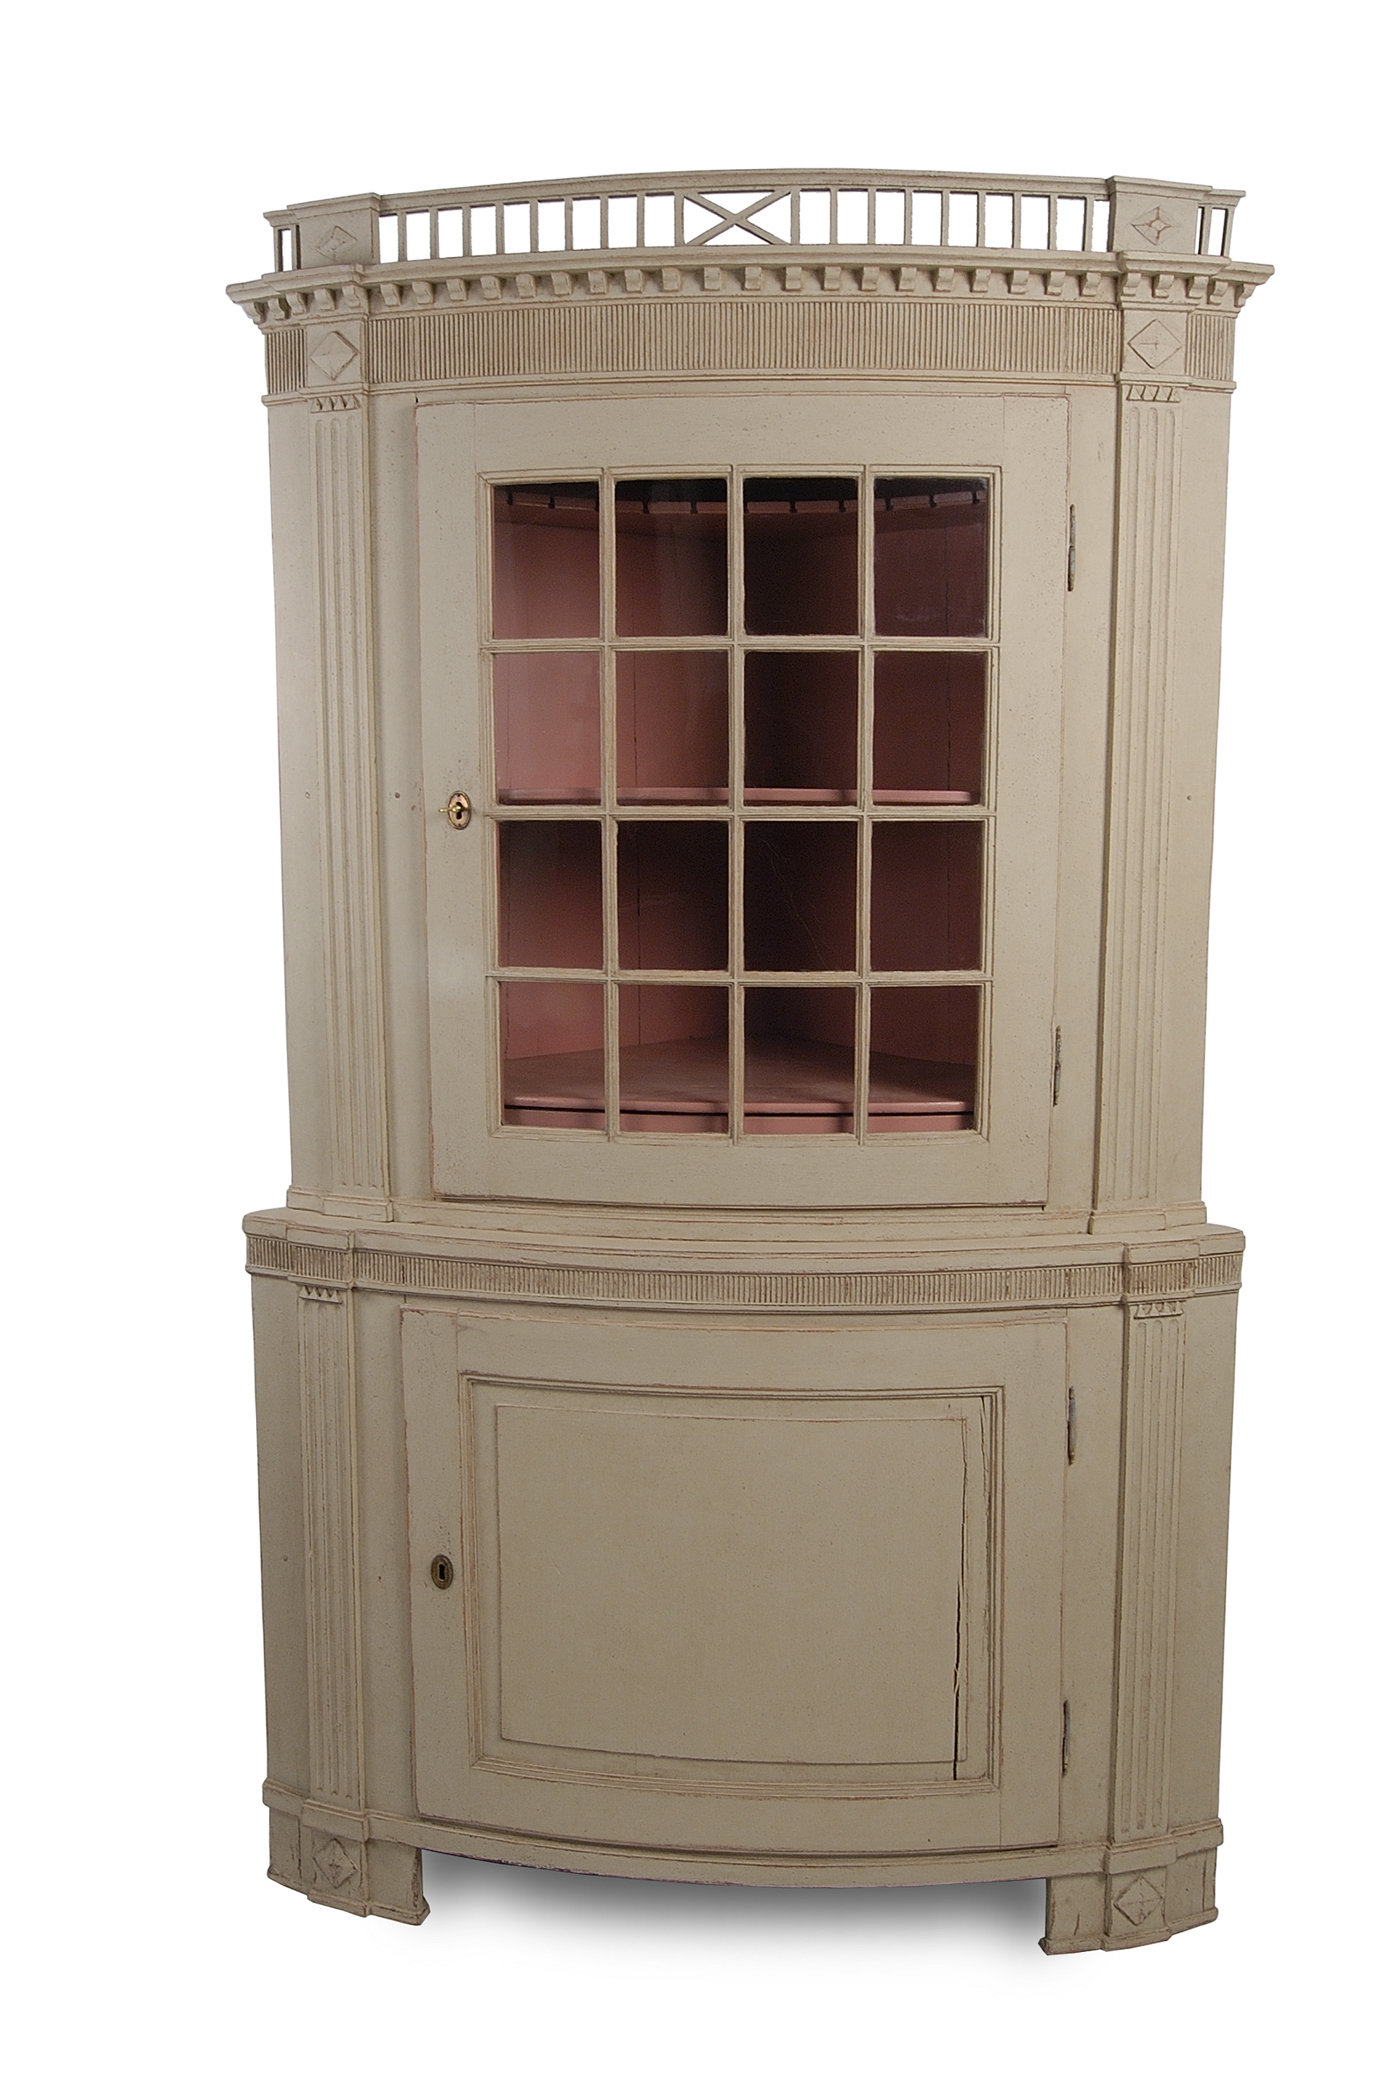 Swedish Antique Painted Corner Cupboard - 1780 - Antiques.com Directories Resources